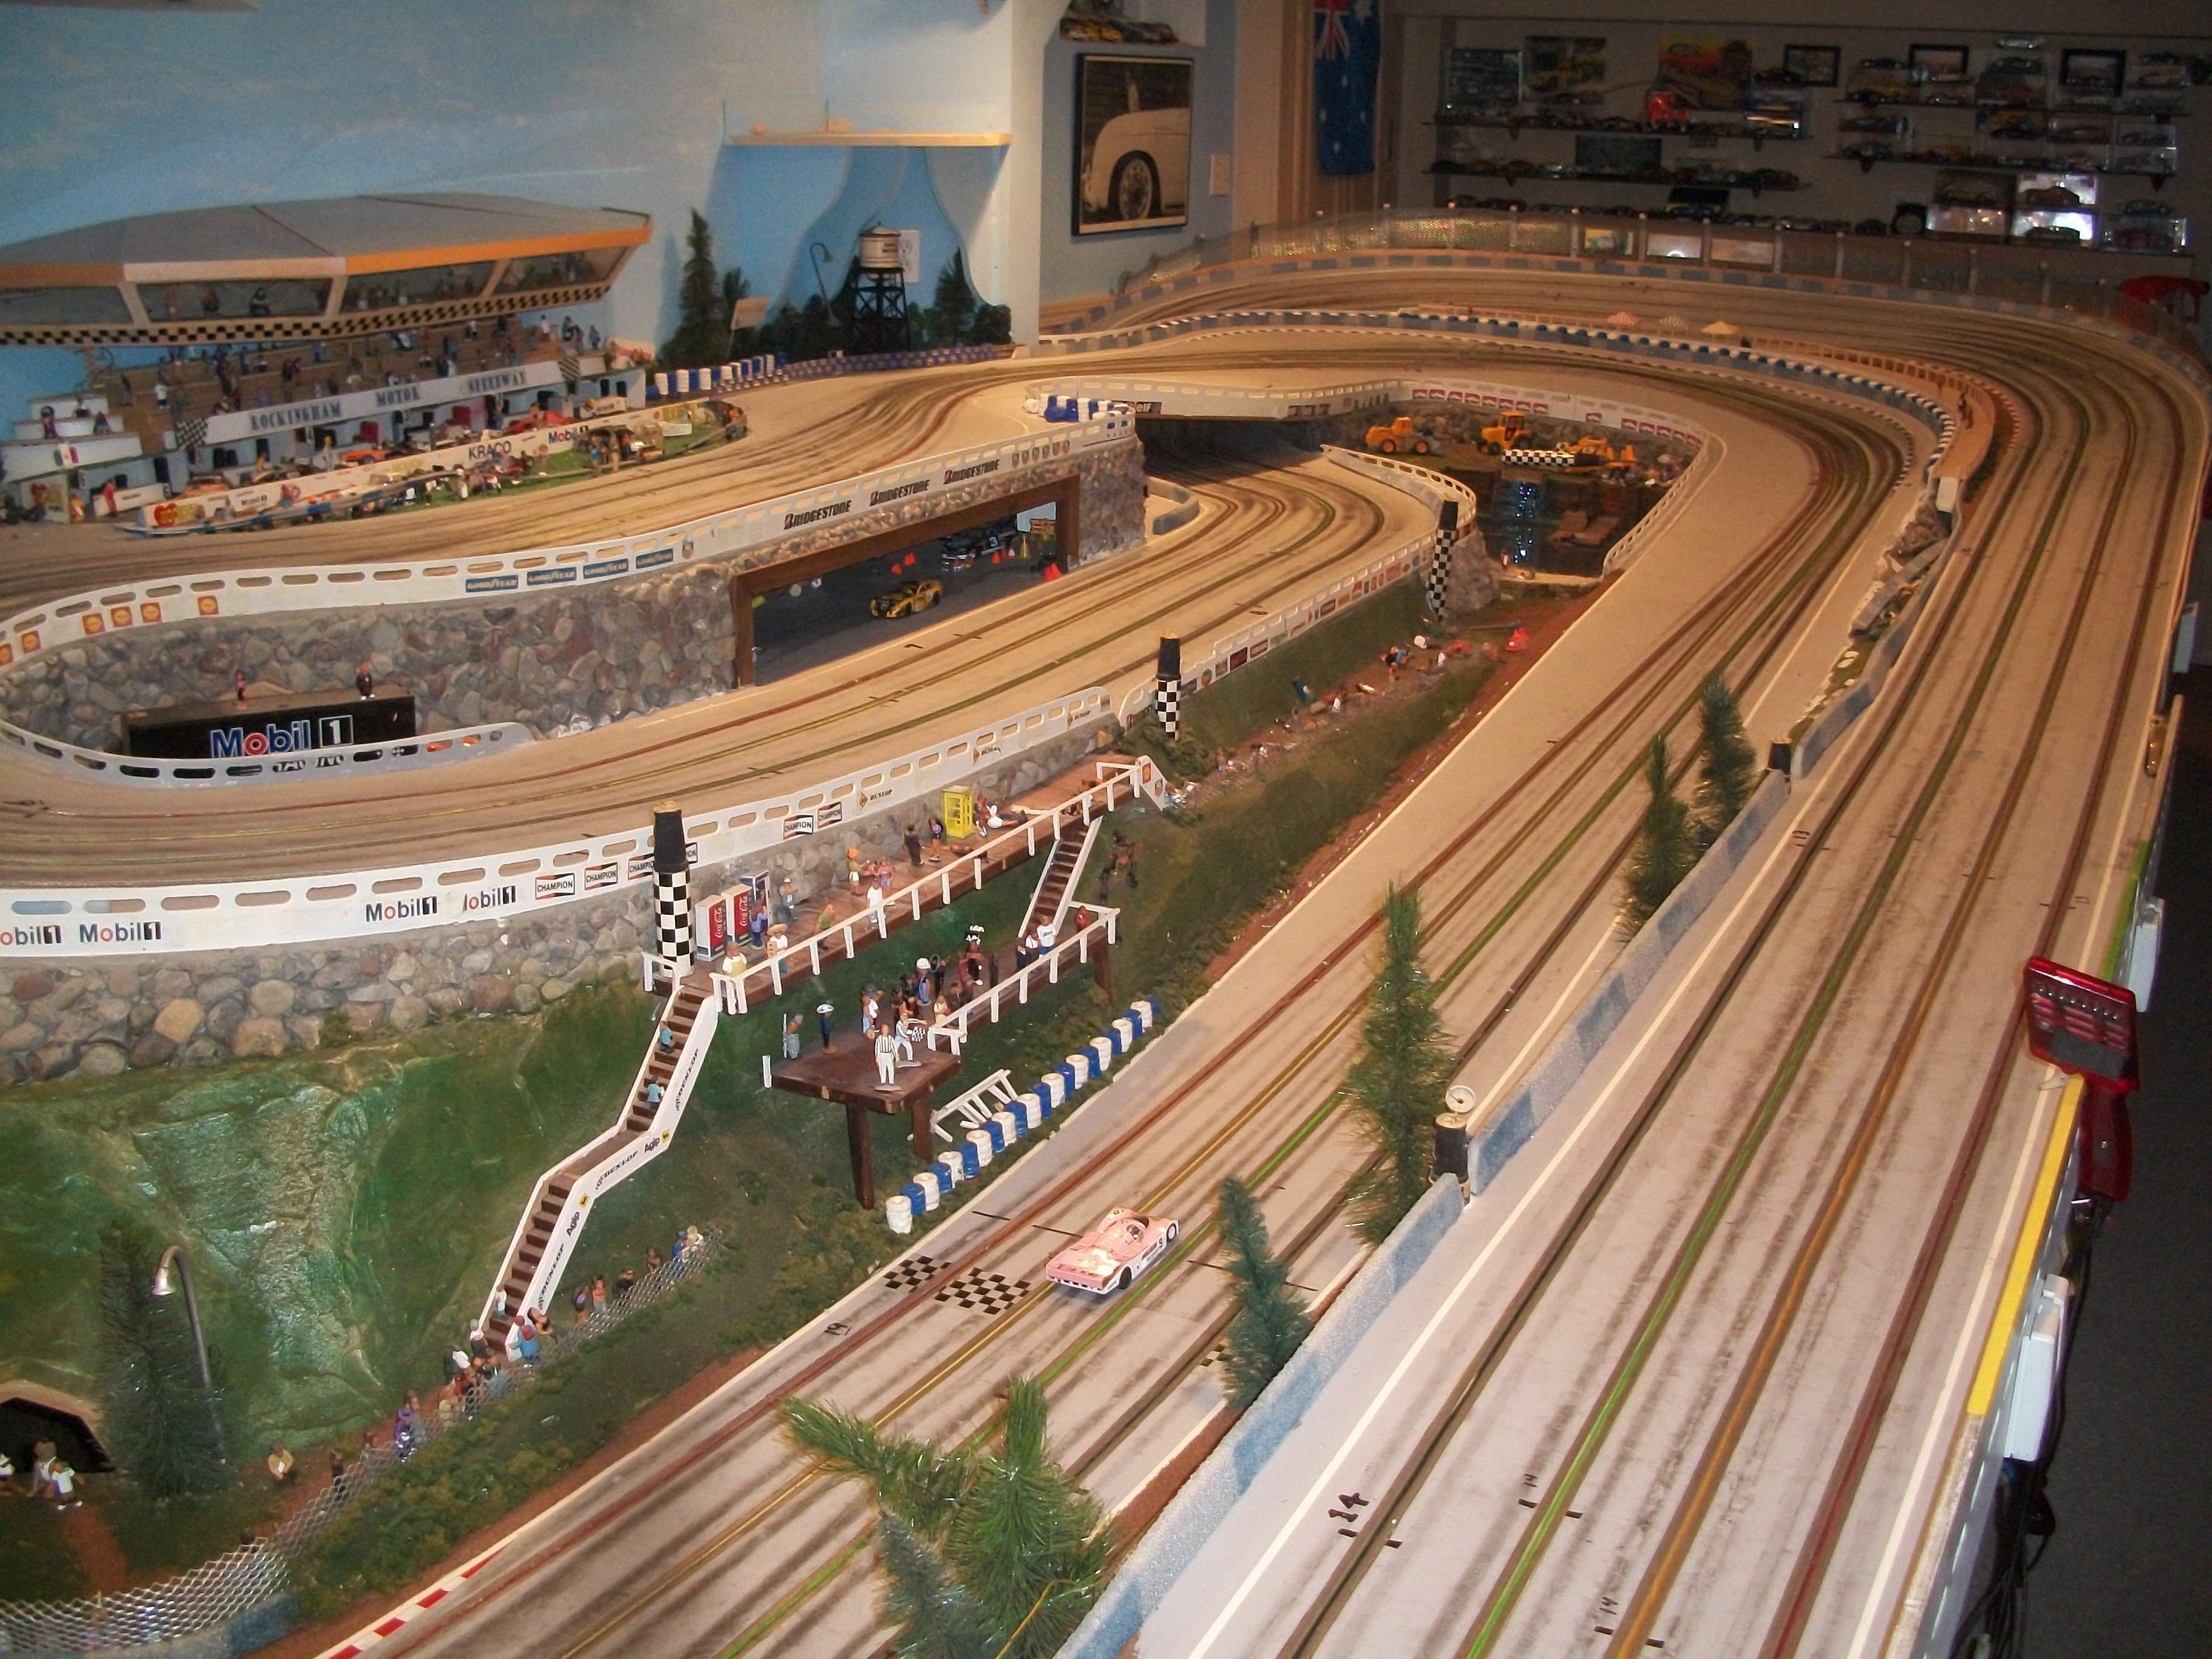 1 24 slot car tracks how to build spinning stars slot